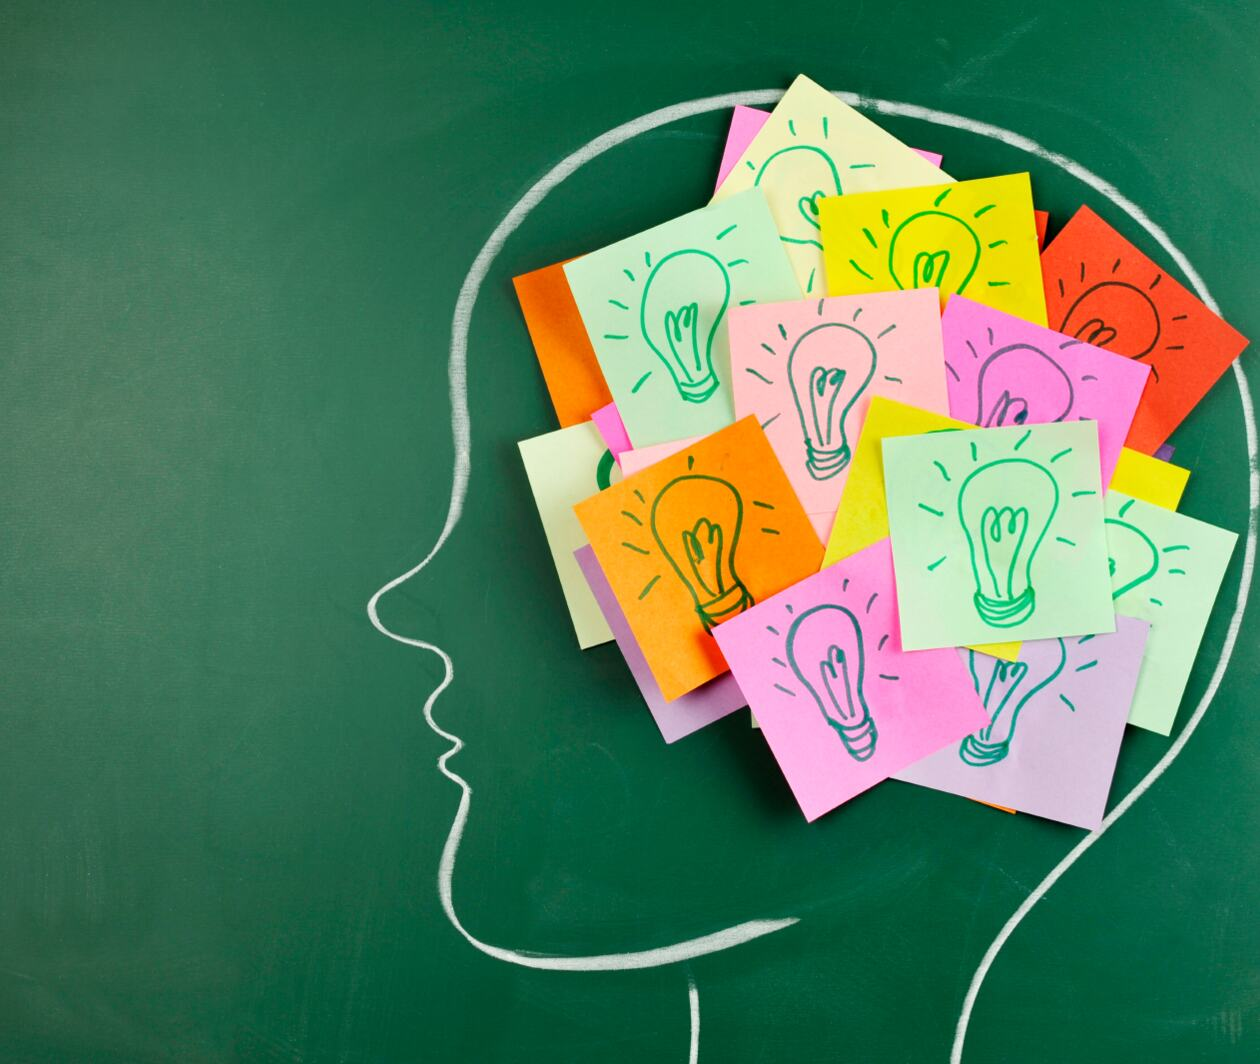 Develop Conceptual Thinking for Problem-Solving